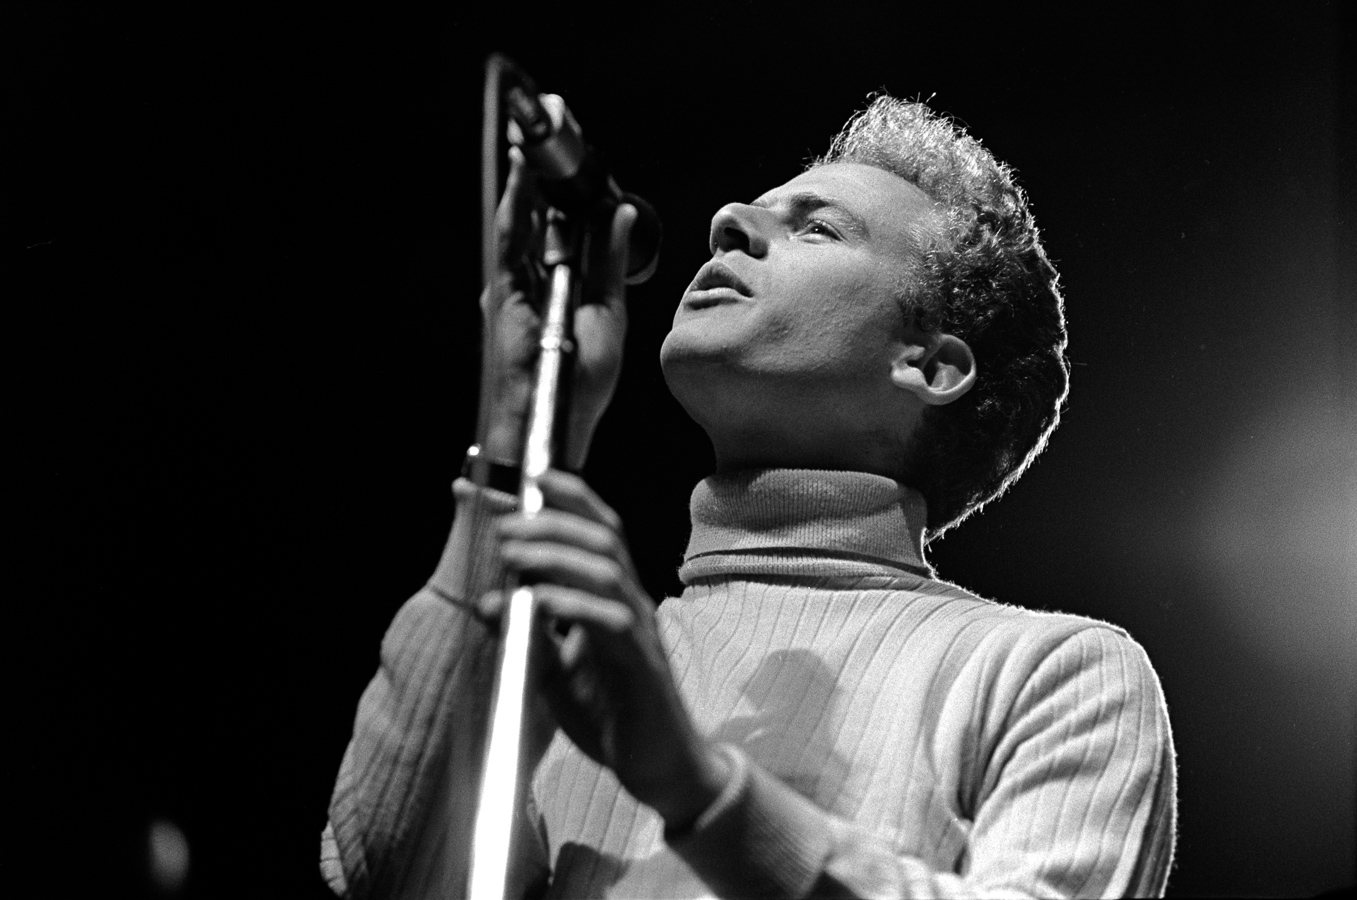 Art Garfunkel brought a sweet, upper range to Paul Simon's lower range voice. They represented the East Coast sound well.